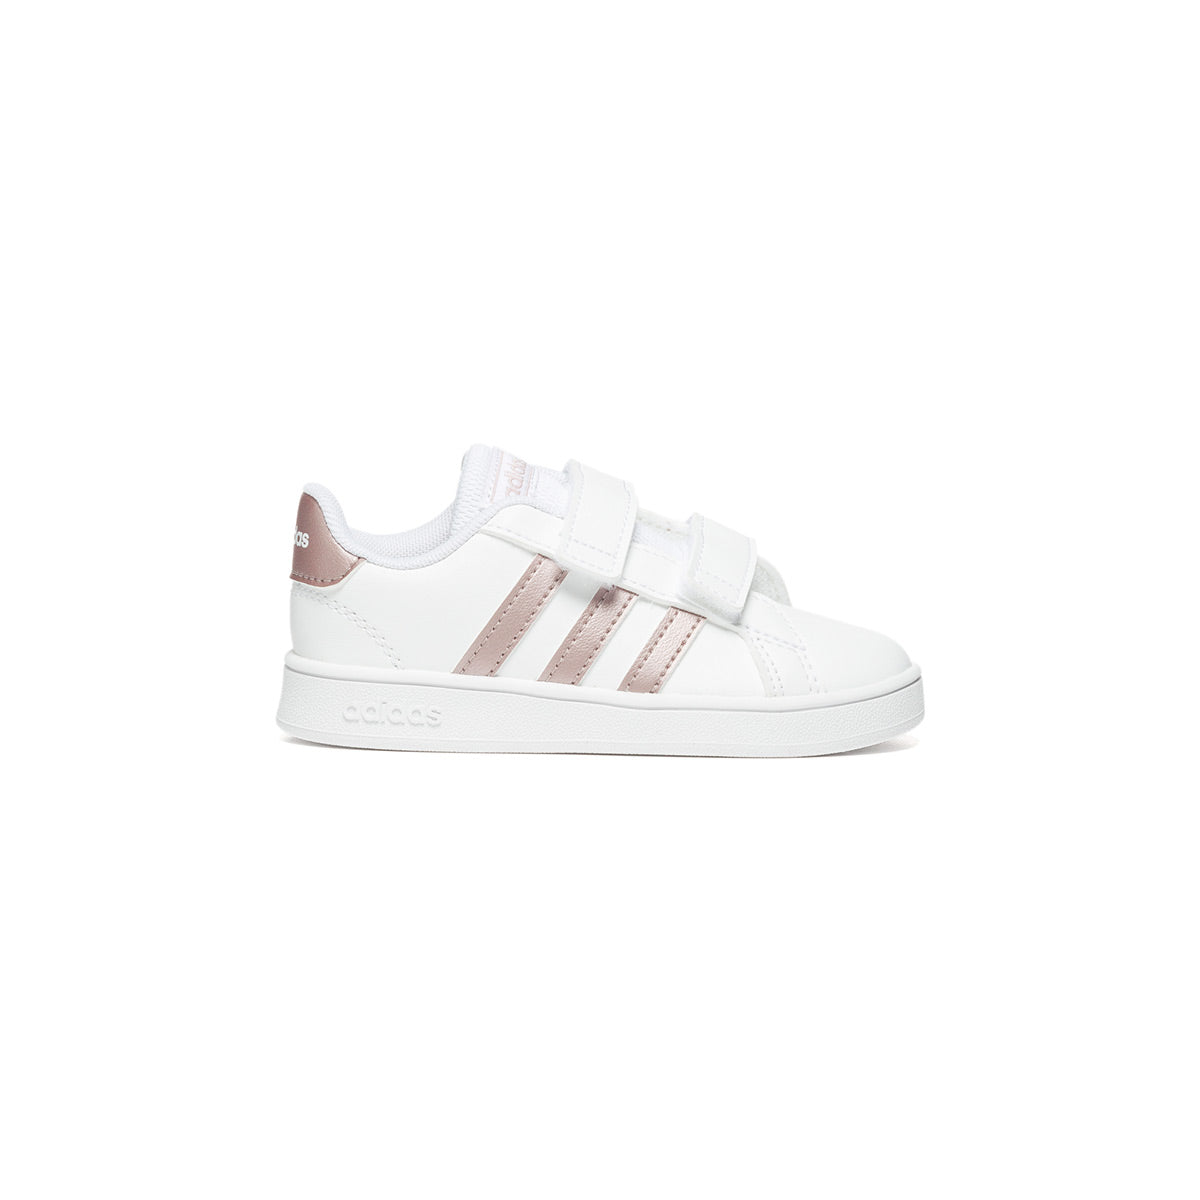 Sneakers bianche con strisce a contrasto Adidas Grand Court I, Brand, SKU s334000028, Immagine 0